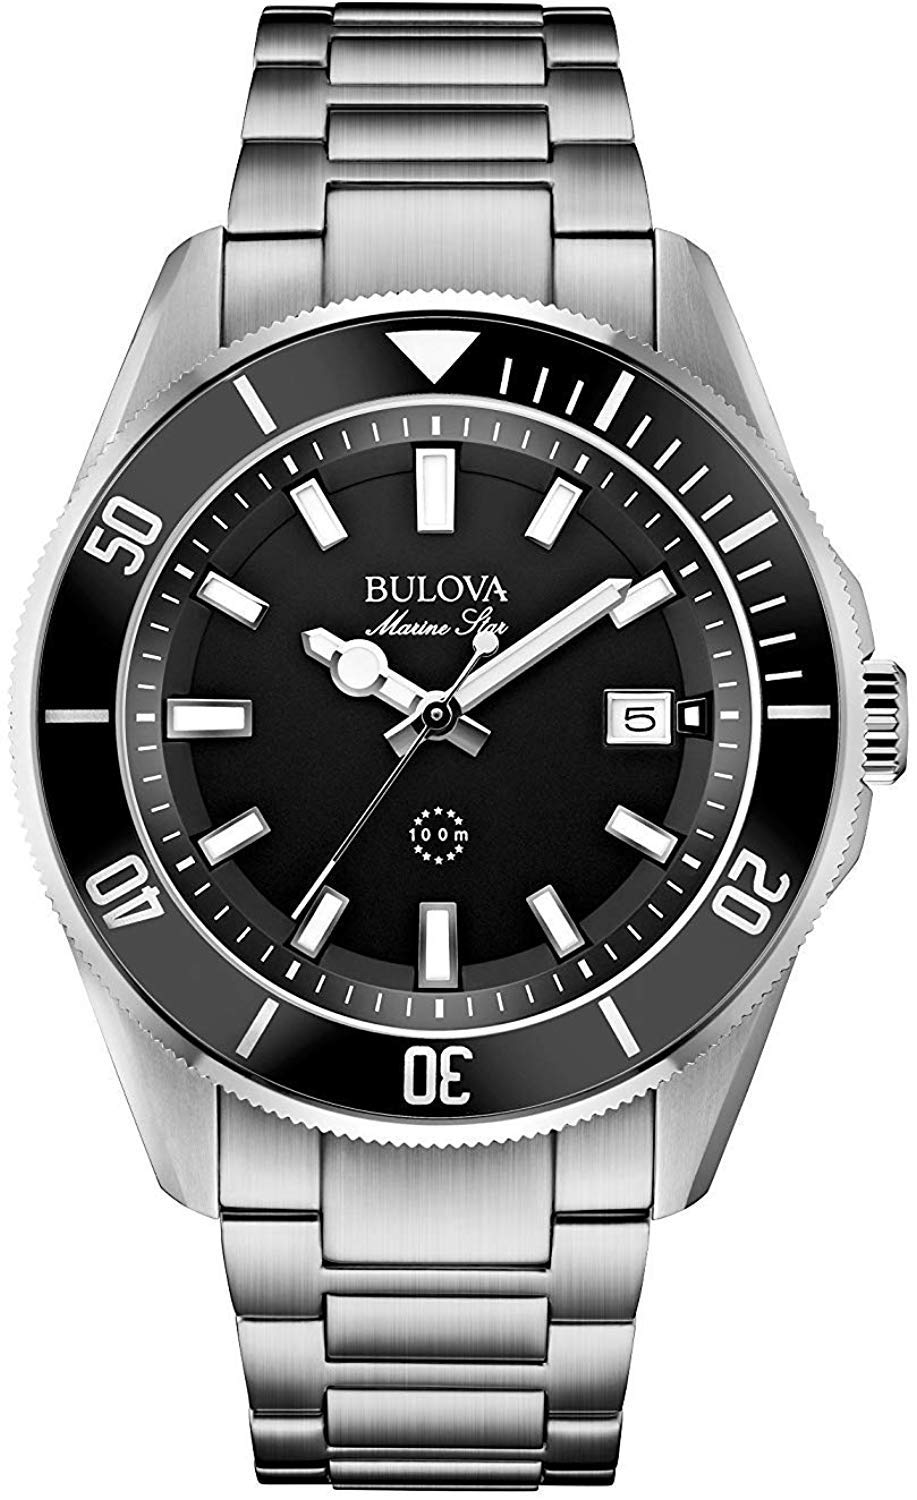 Bulova Men's Designer Watch Stainless Steel Bracelet – Water Resistant Black Dial Marine Star 98B203